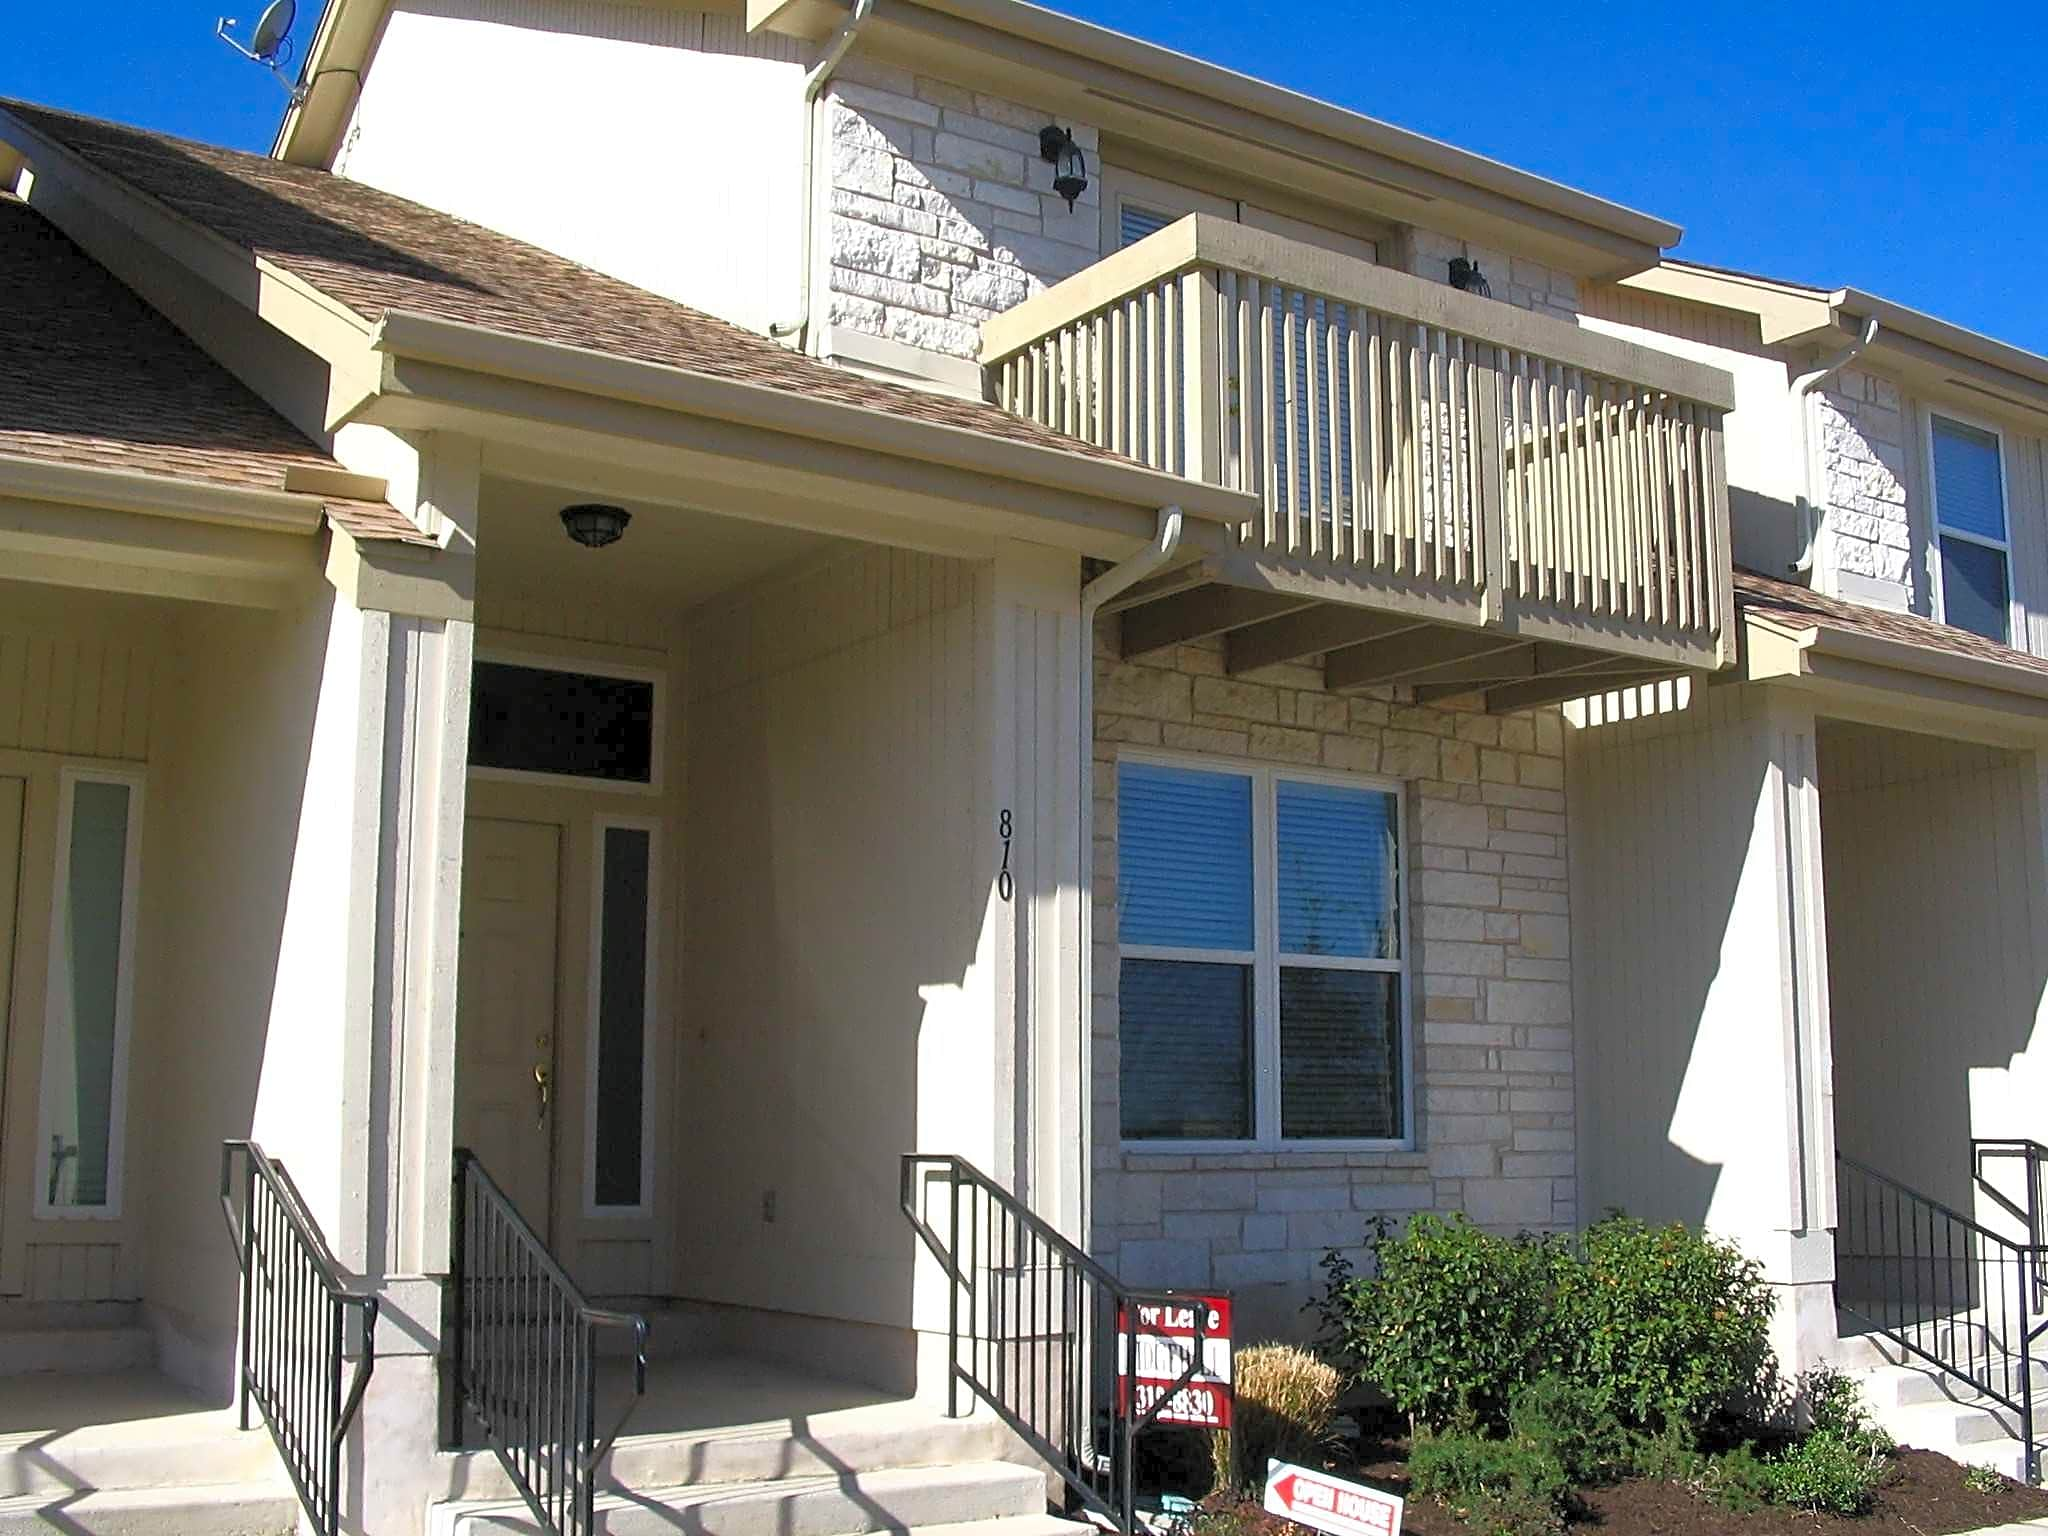 Condo for Rent in Round Rock